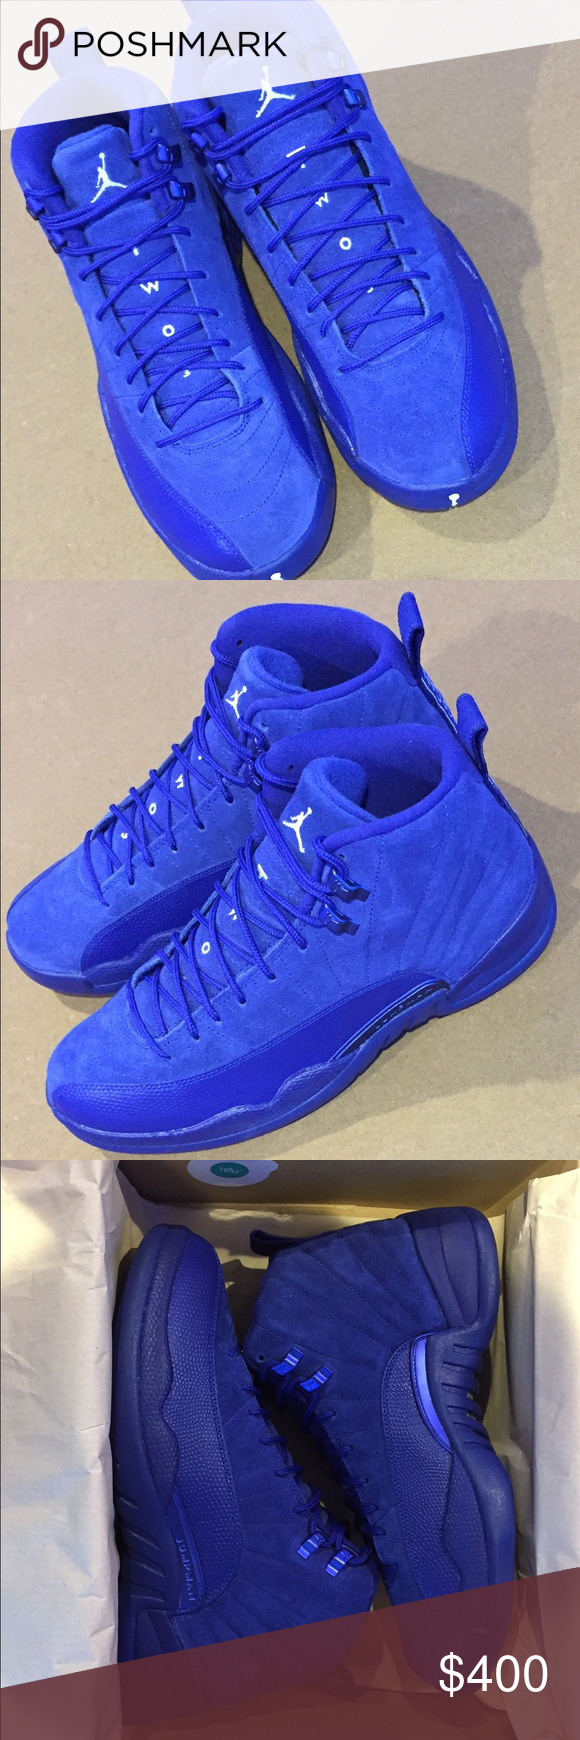 cheap for discount 3e949 bea56 Jordan 12 Royal Blue I m selling a pair of the hottest colorway of 2016.  Men s Jordan 12 Royal Blue Suede size 9.5 BRAND NEW in its original box  with ...